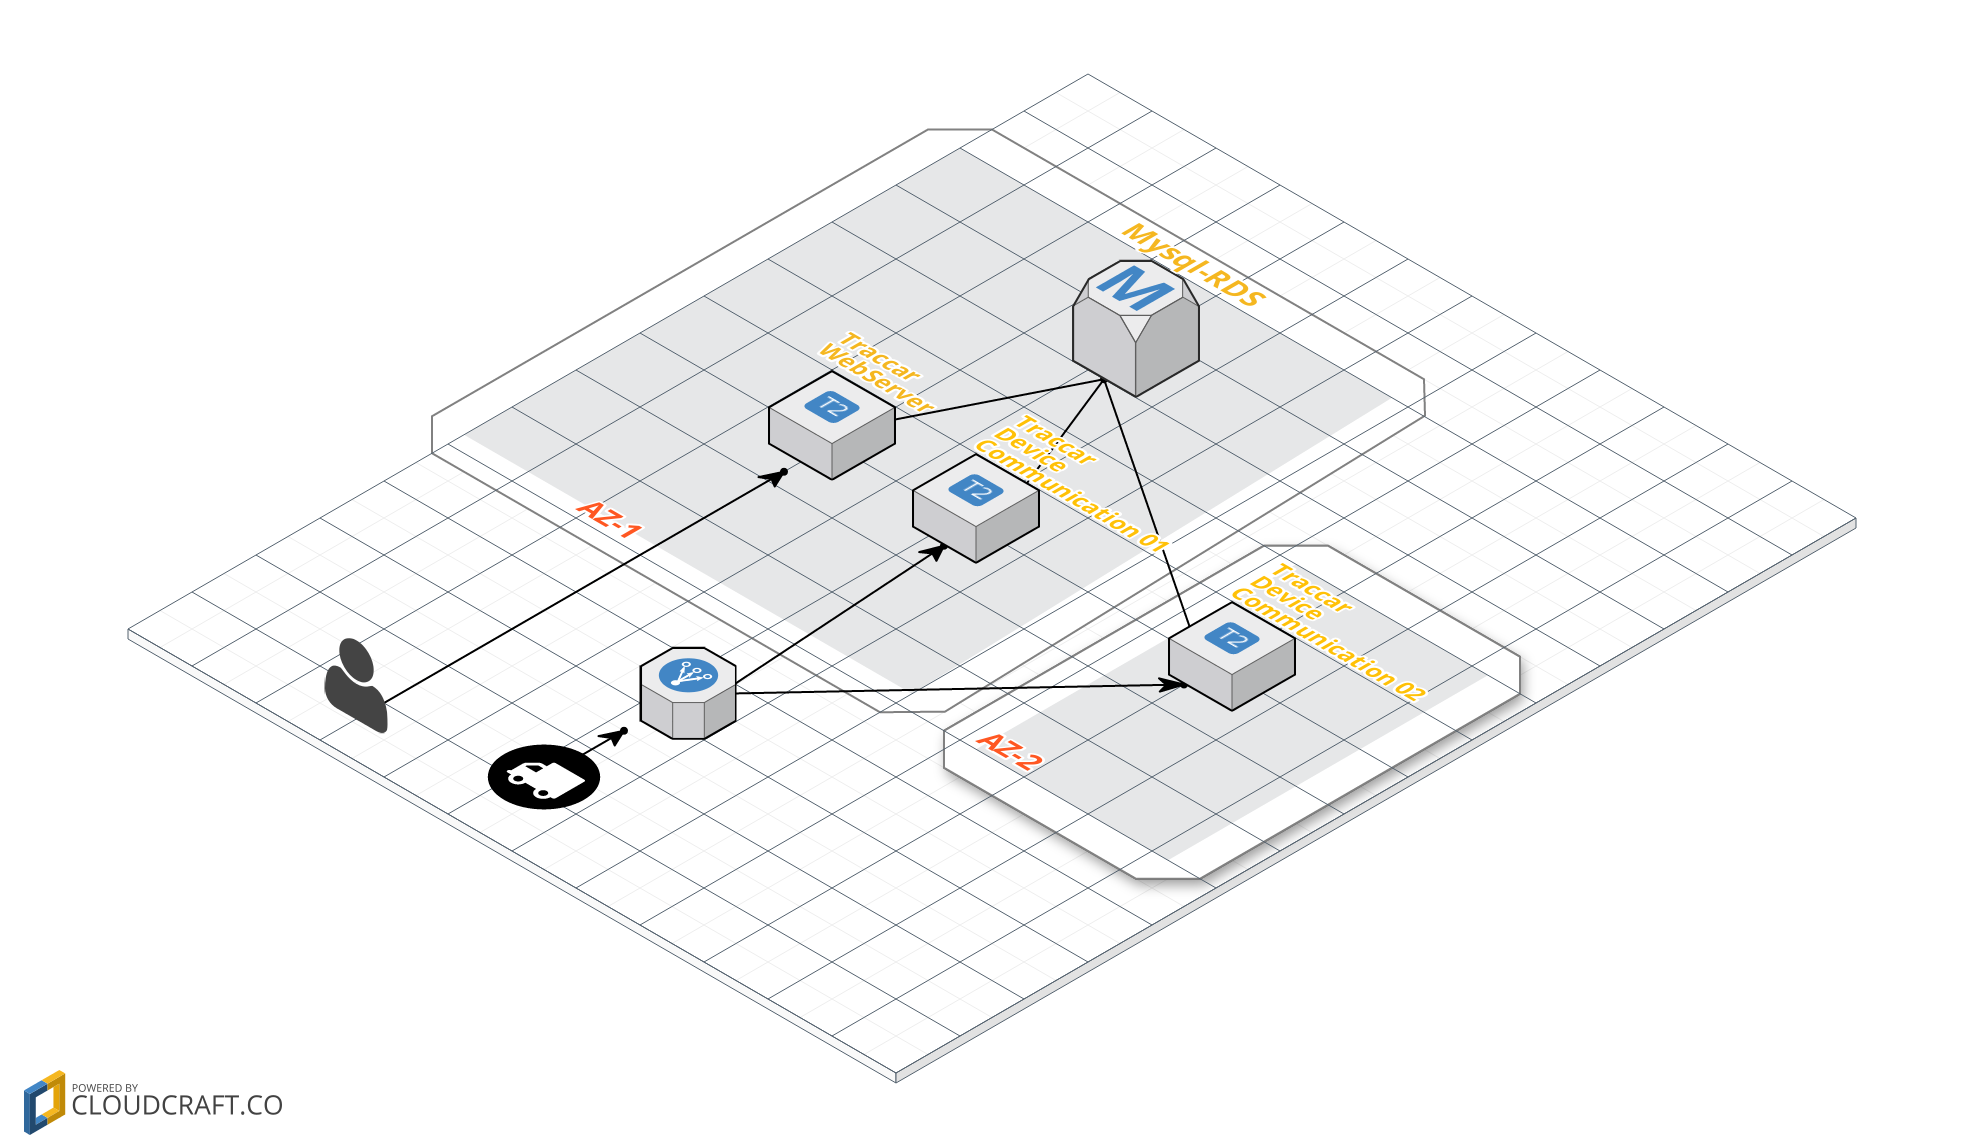 High availability and load balancing using the Traccar